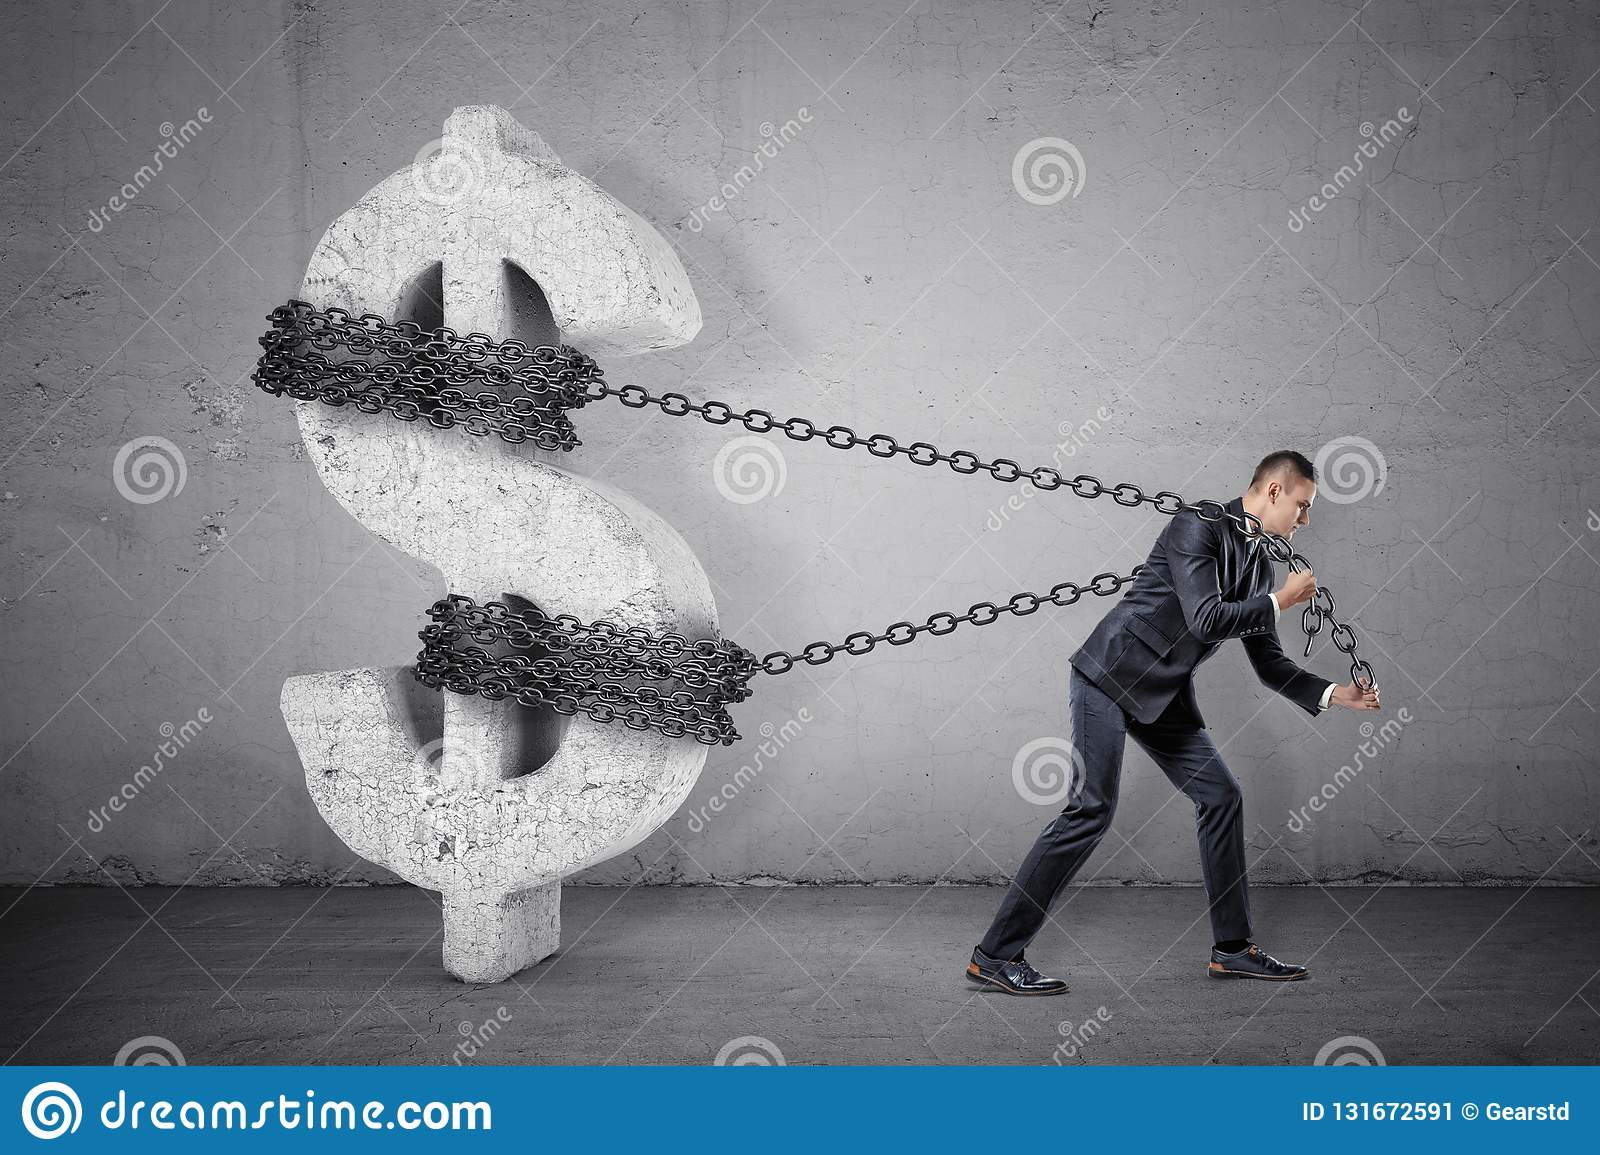 A businessman tugs at a chain trying to move a large concrete dollar sign from its place.